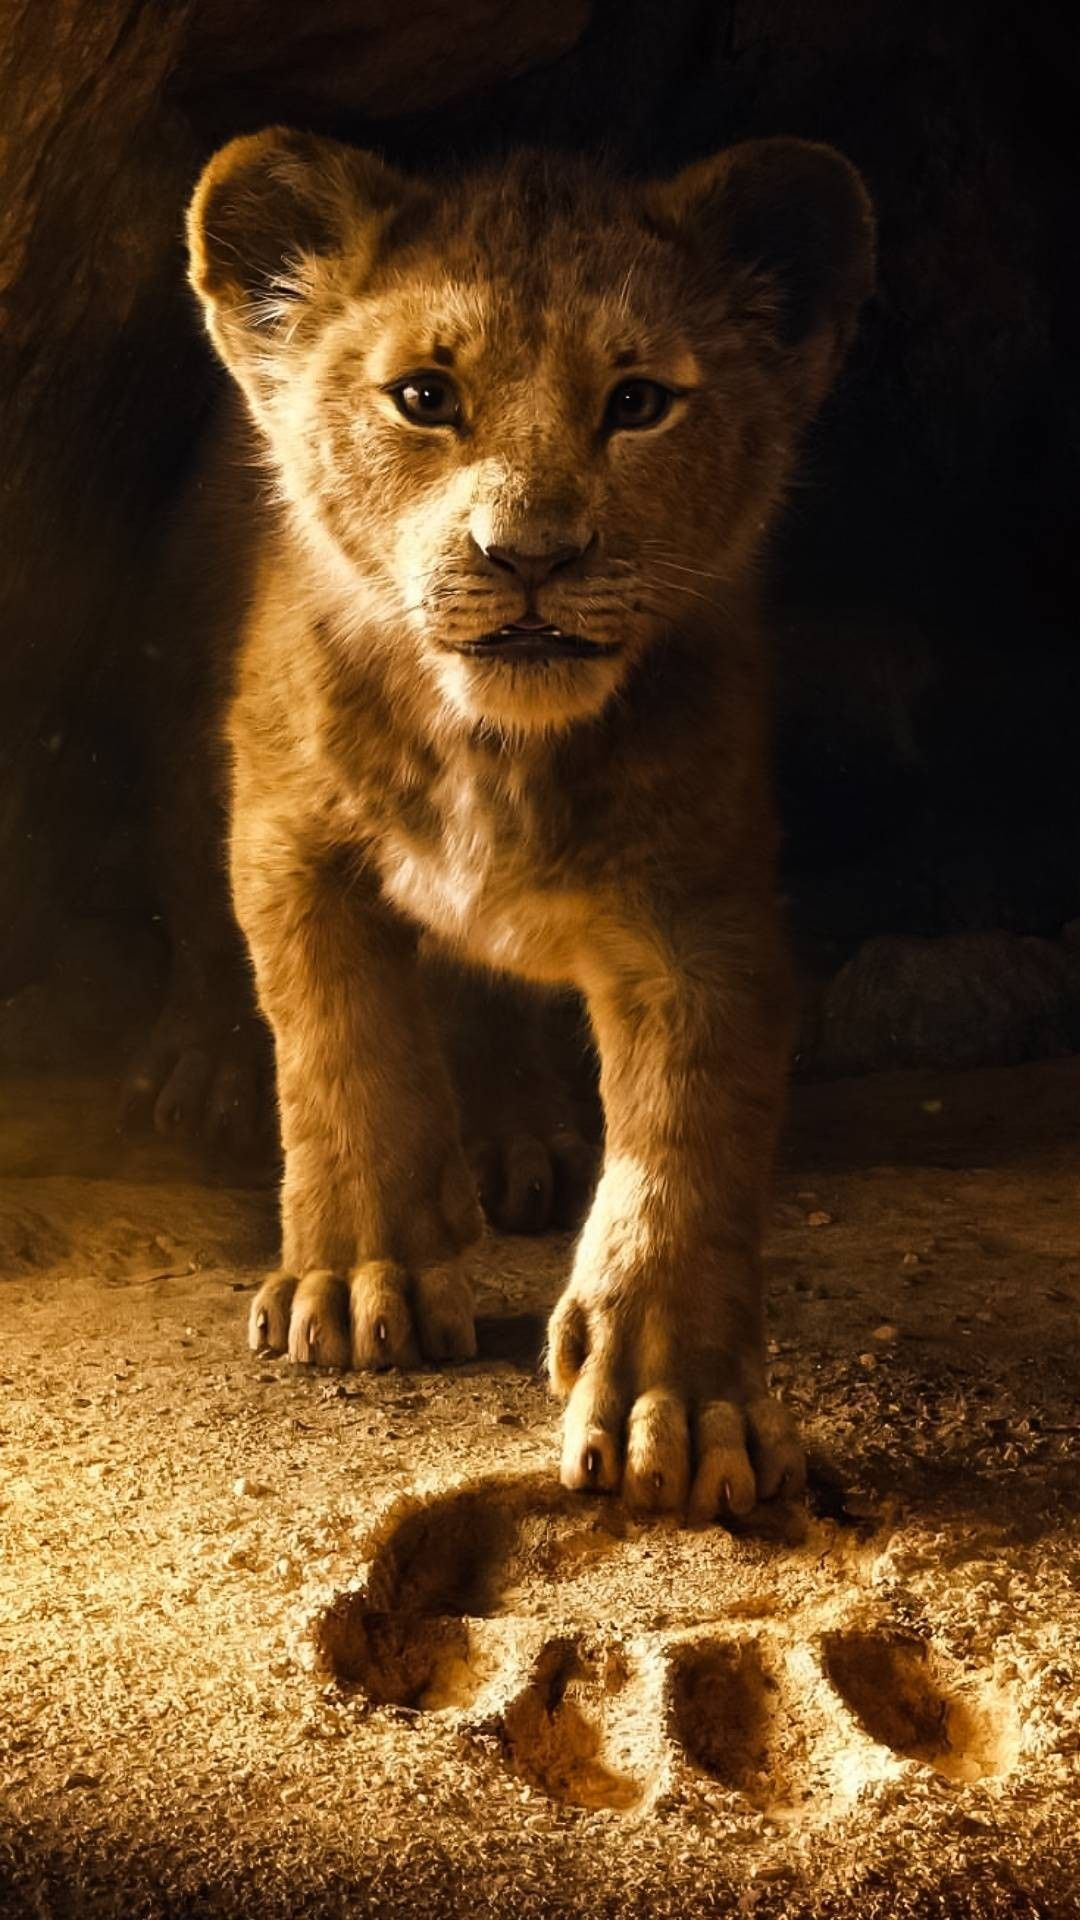 Pin By Paula Smith On Lions Lion King Movie Lion King Art Watch The Lion King